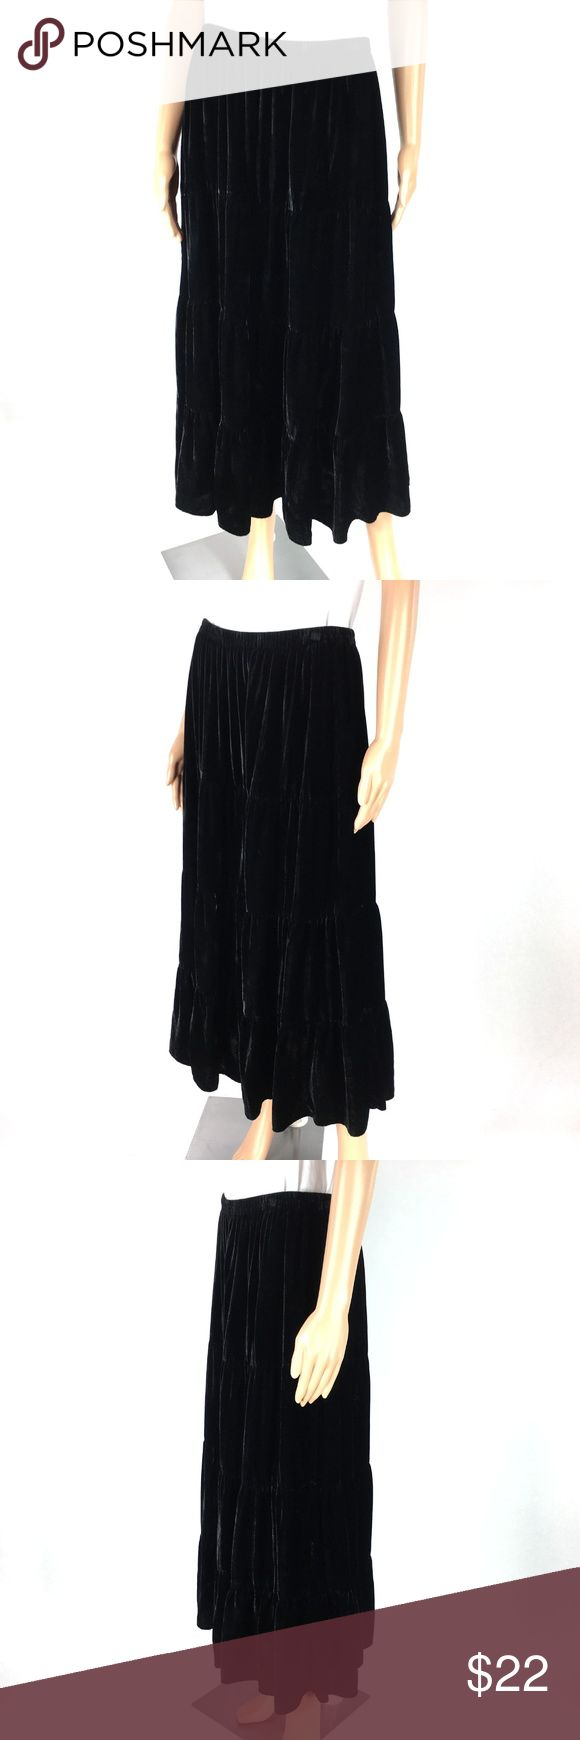 "White Stag Women's Black Velvet Tiered Boho Skirt White Stag Women's Size L (12/14) Black Velvet Tiered BOHO Gypsy Hippie Skirt Pre-owned Occasion:	Any	 Color:	Black Size Type:	Regular	 Material:	Velvet Length:	Mid-Calf	 Brand:	White Stag Country/Region of Manufacture:	India	 Theme:	Hippie Hips Across The front:	22""	 Style:	Tiered Other:	White Top Does Not Come With Skirt	 Bottoms Size (Women's):	L Waist:	28""	 Pattern:	Solid Waist To Hem:	37"" White Stag Skirts A-Line or Full"